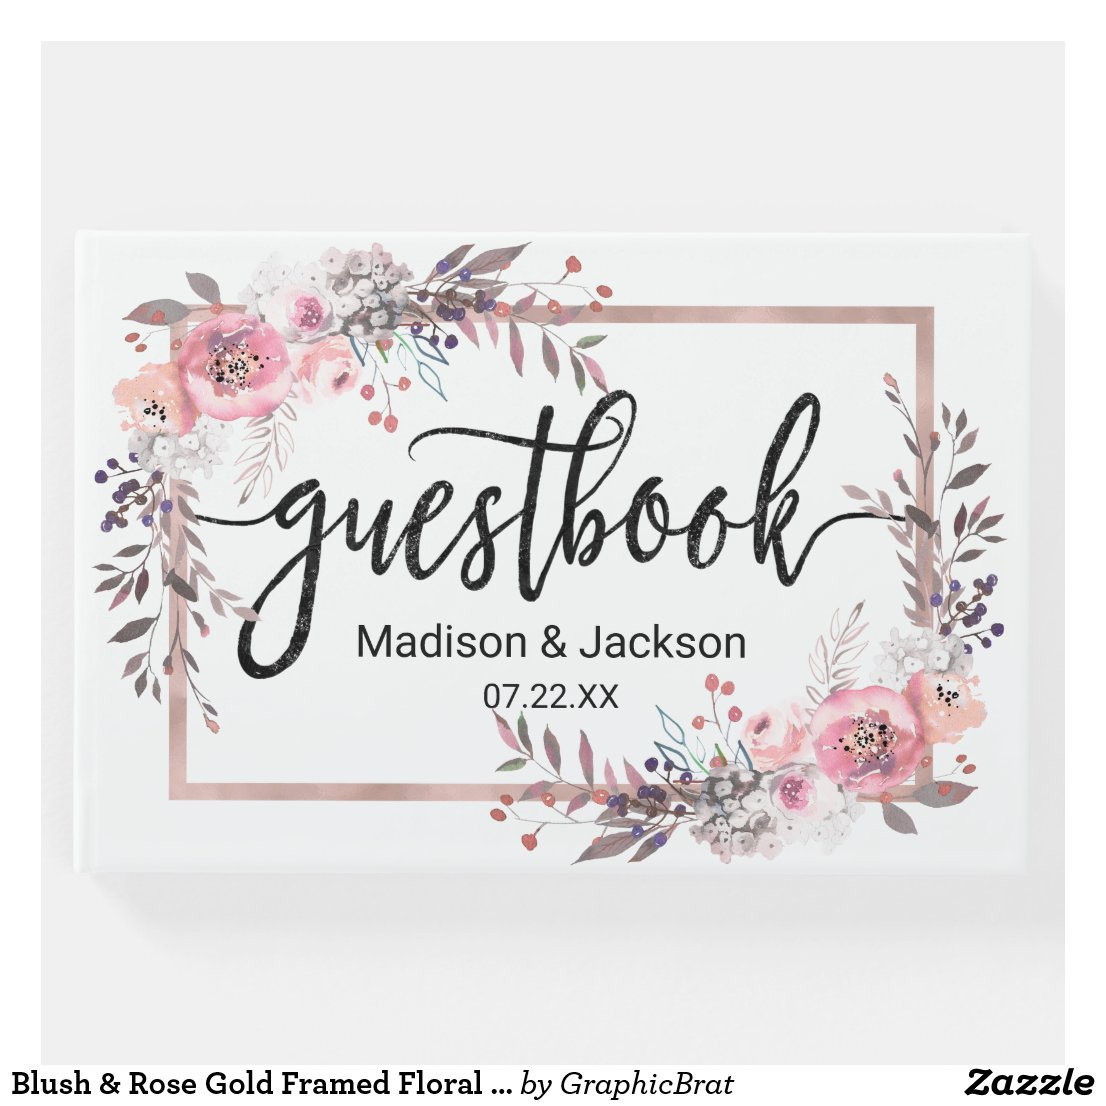 Blush & Rose Gold Framed Floral Wedding Monogram Guest Book